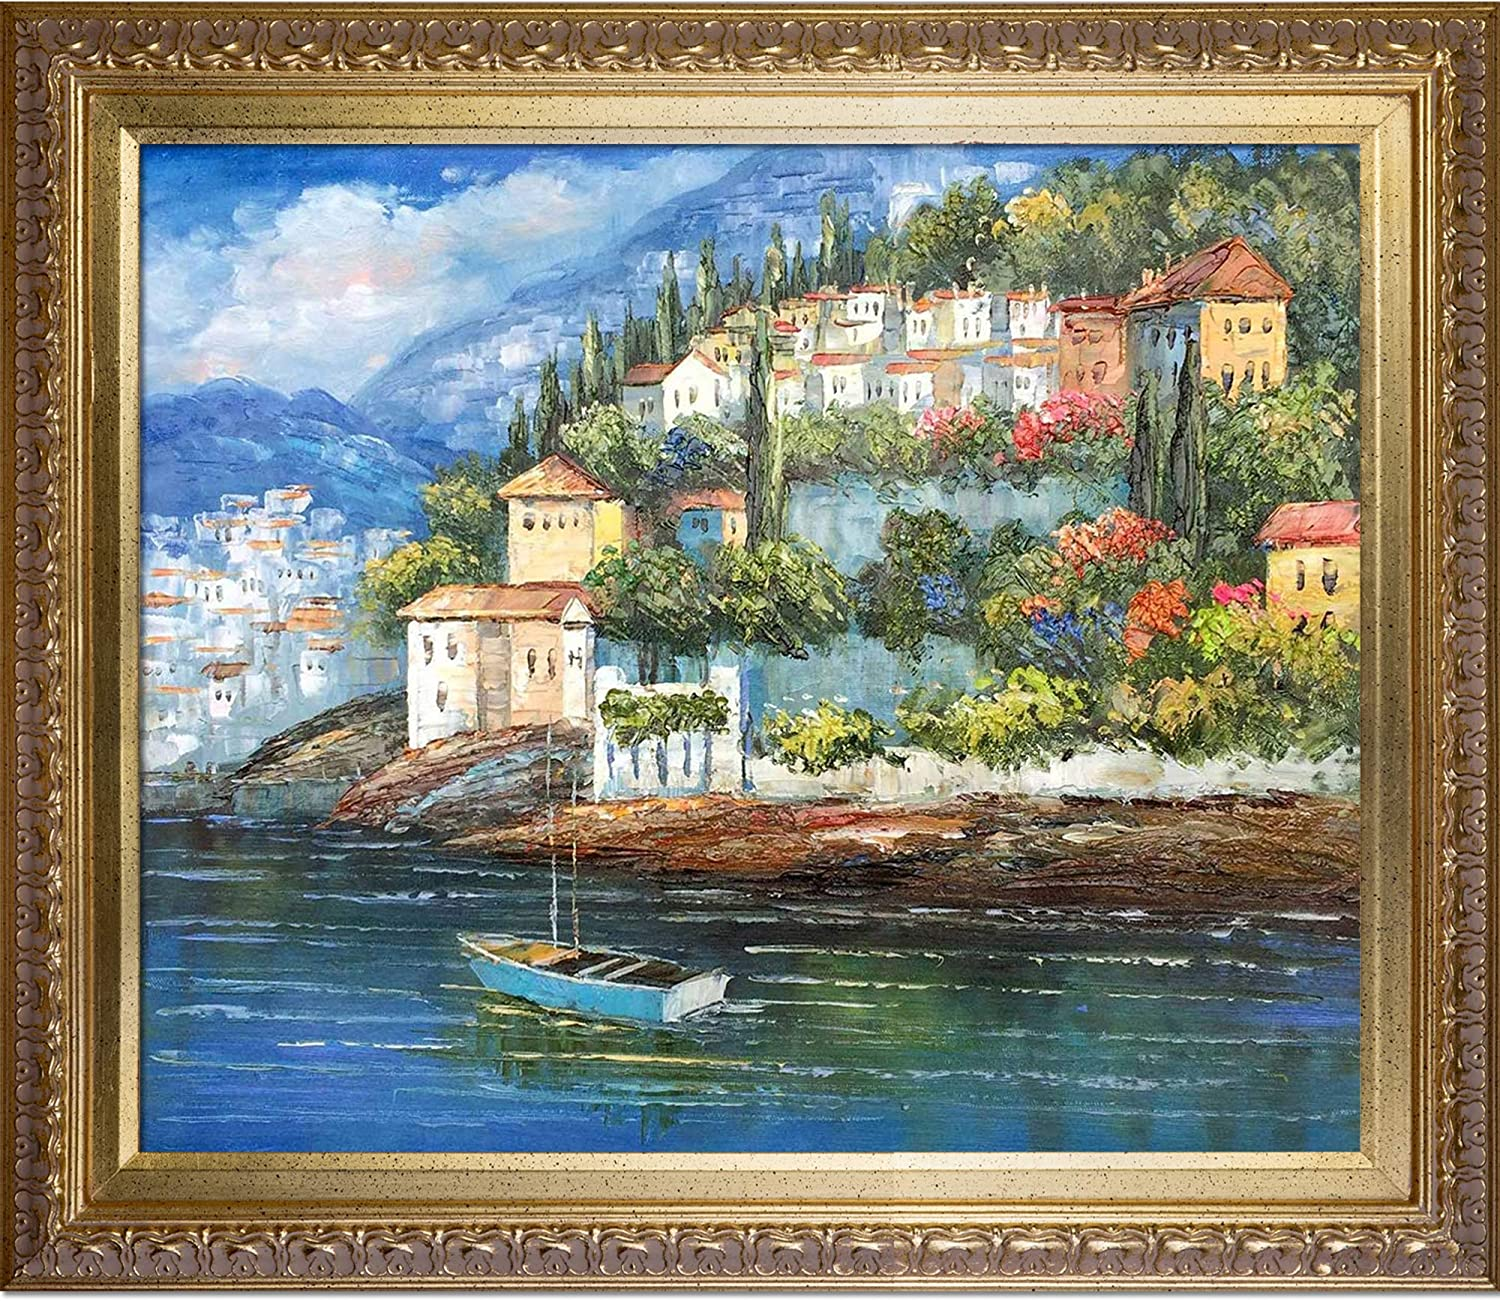 overstockArt Italy at Dusk Painting Wood Elegant Max 42% OFF Frame Large discharge sale Gold with